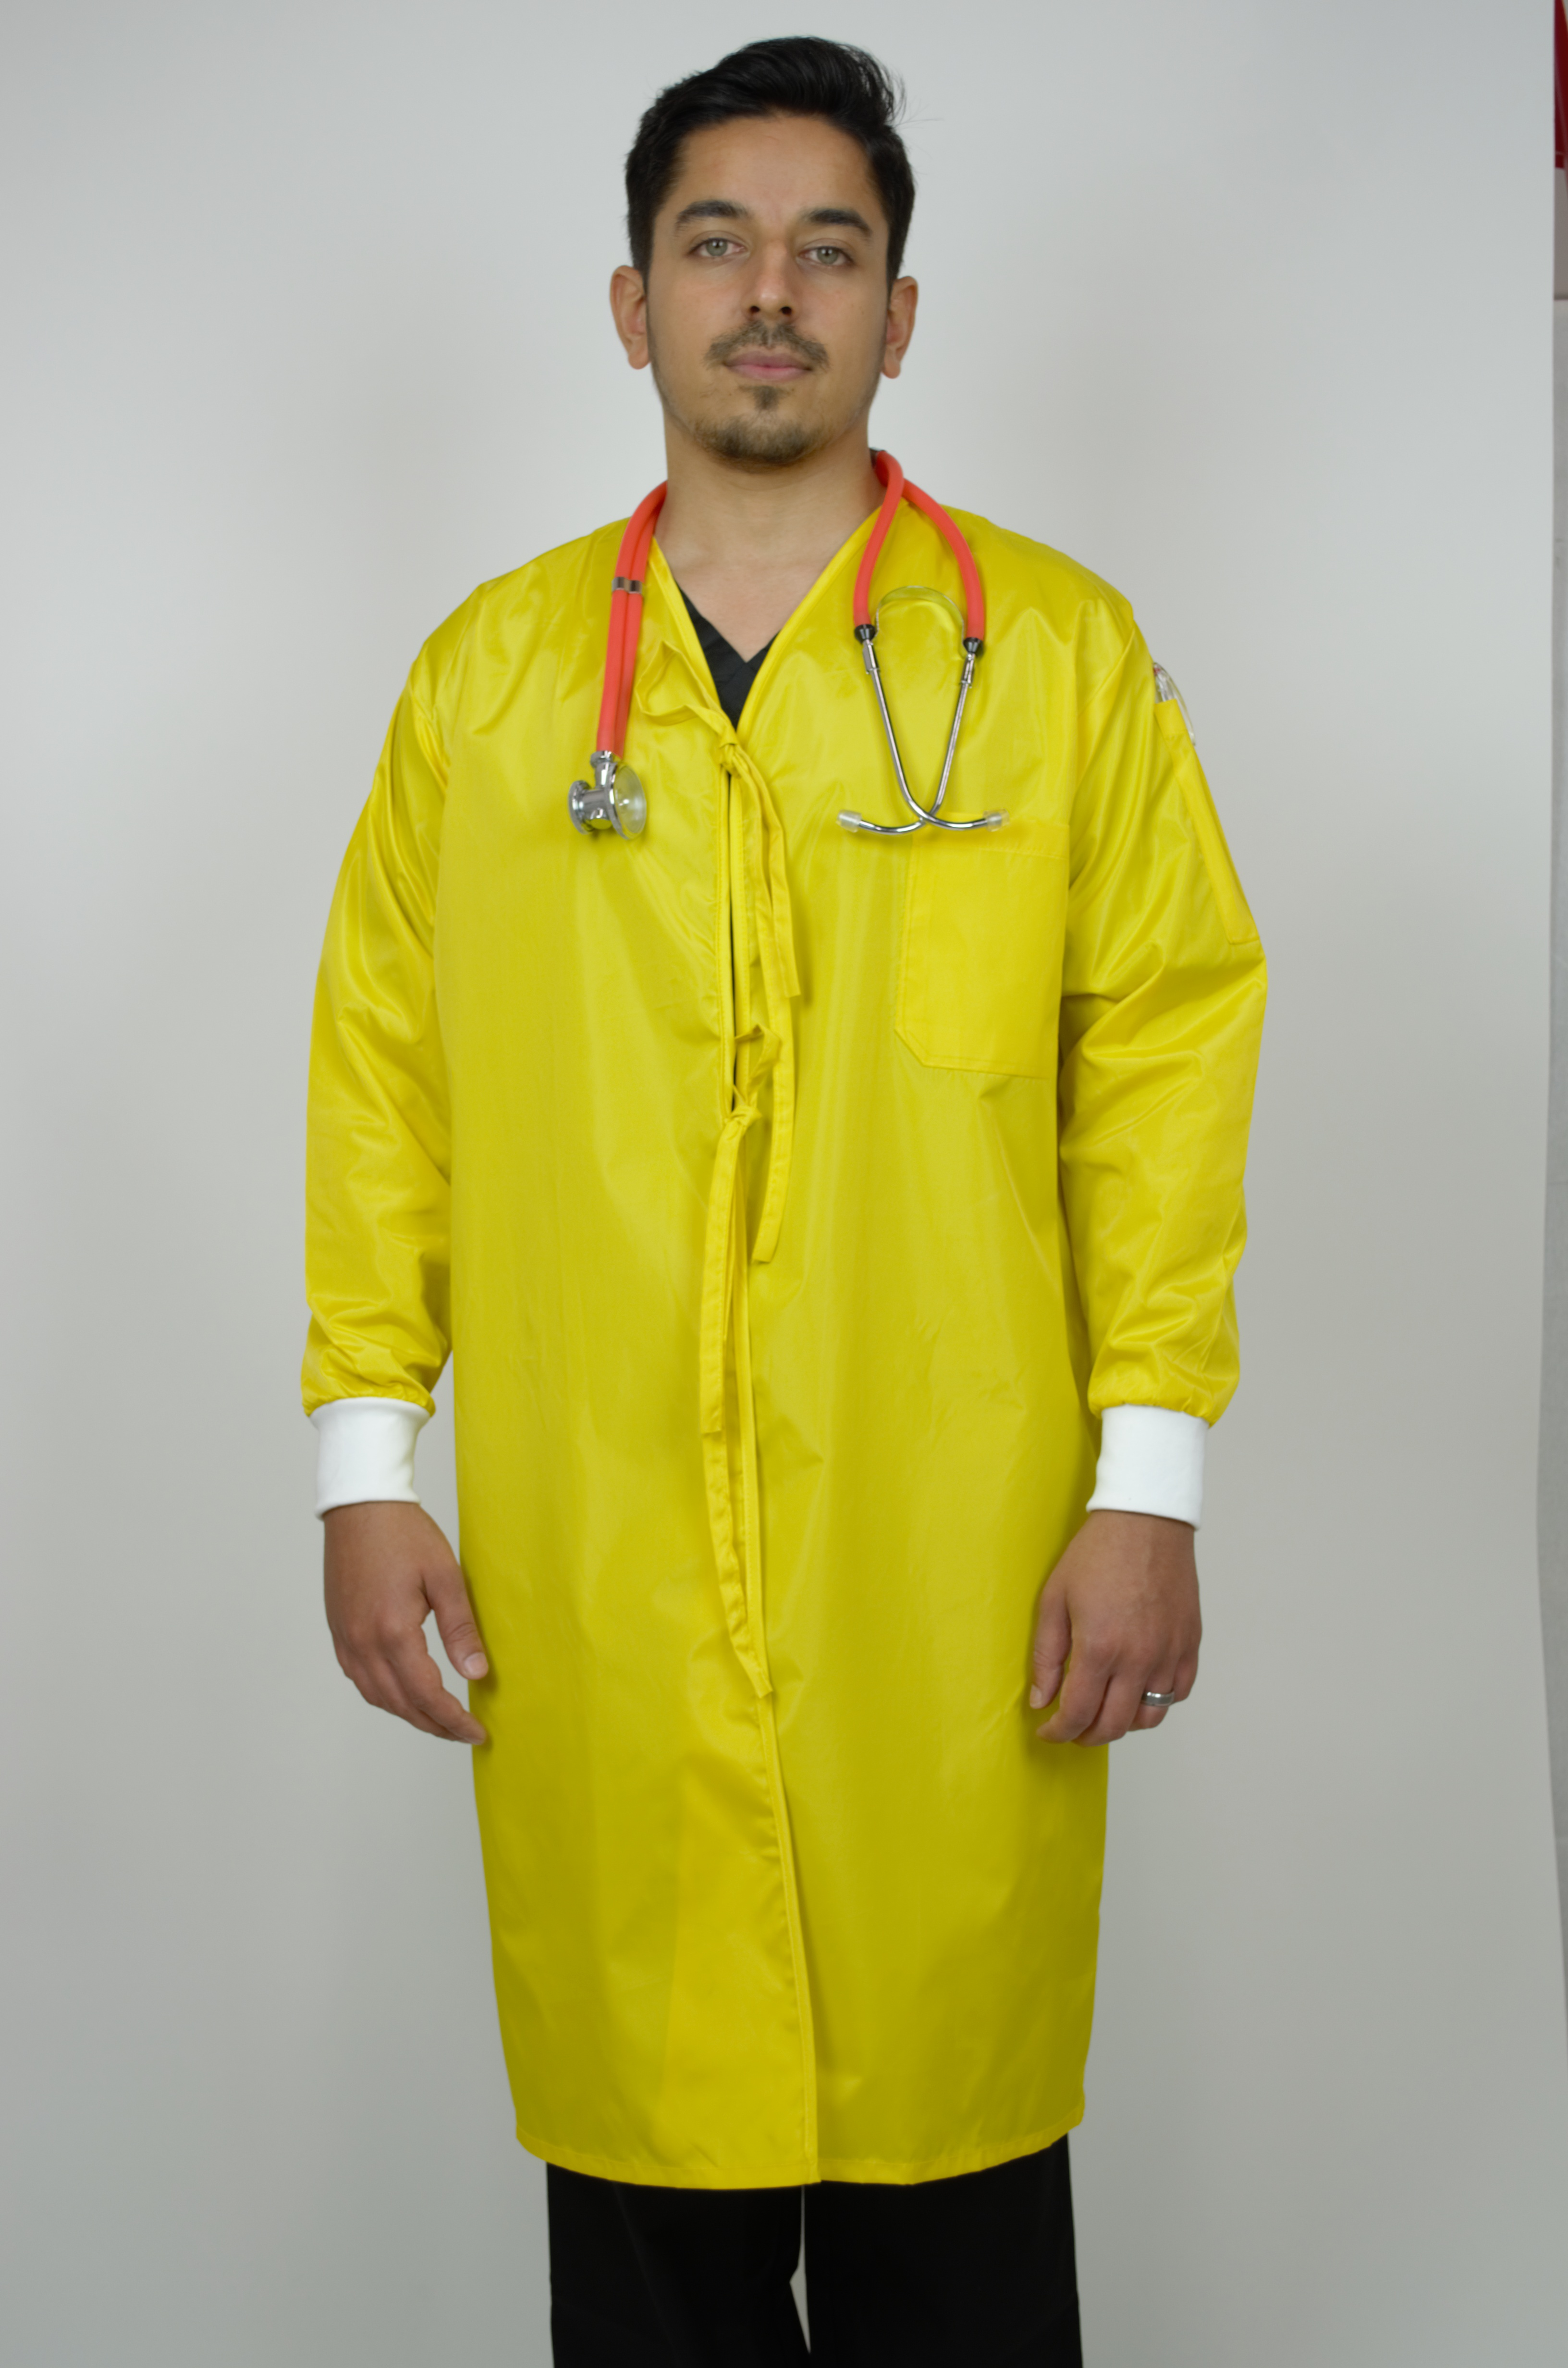 Protective Gown - VN2